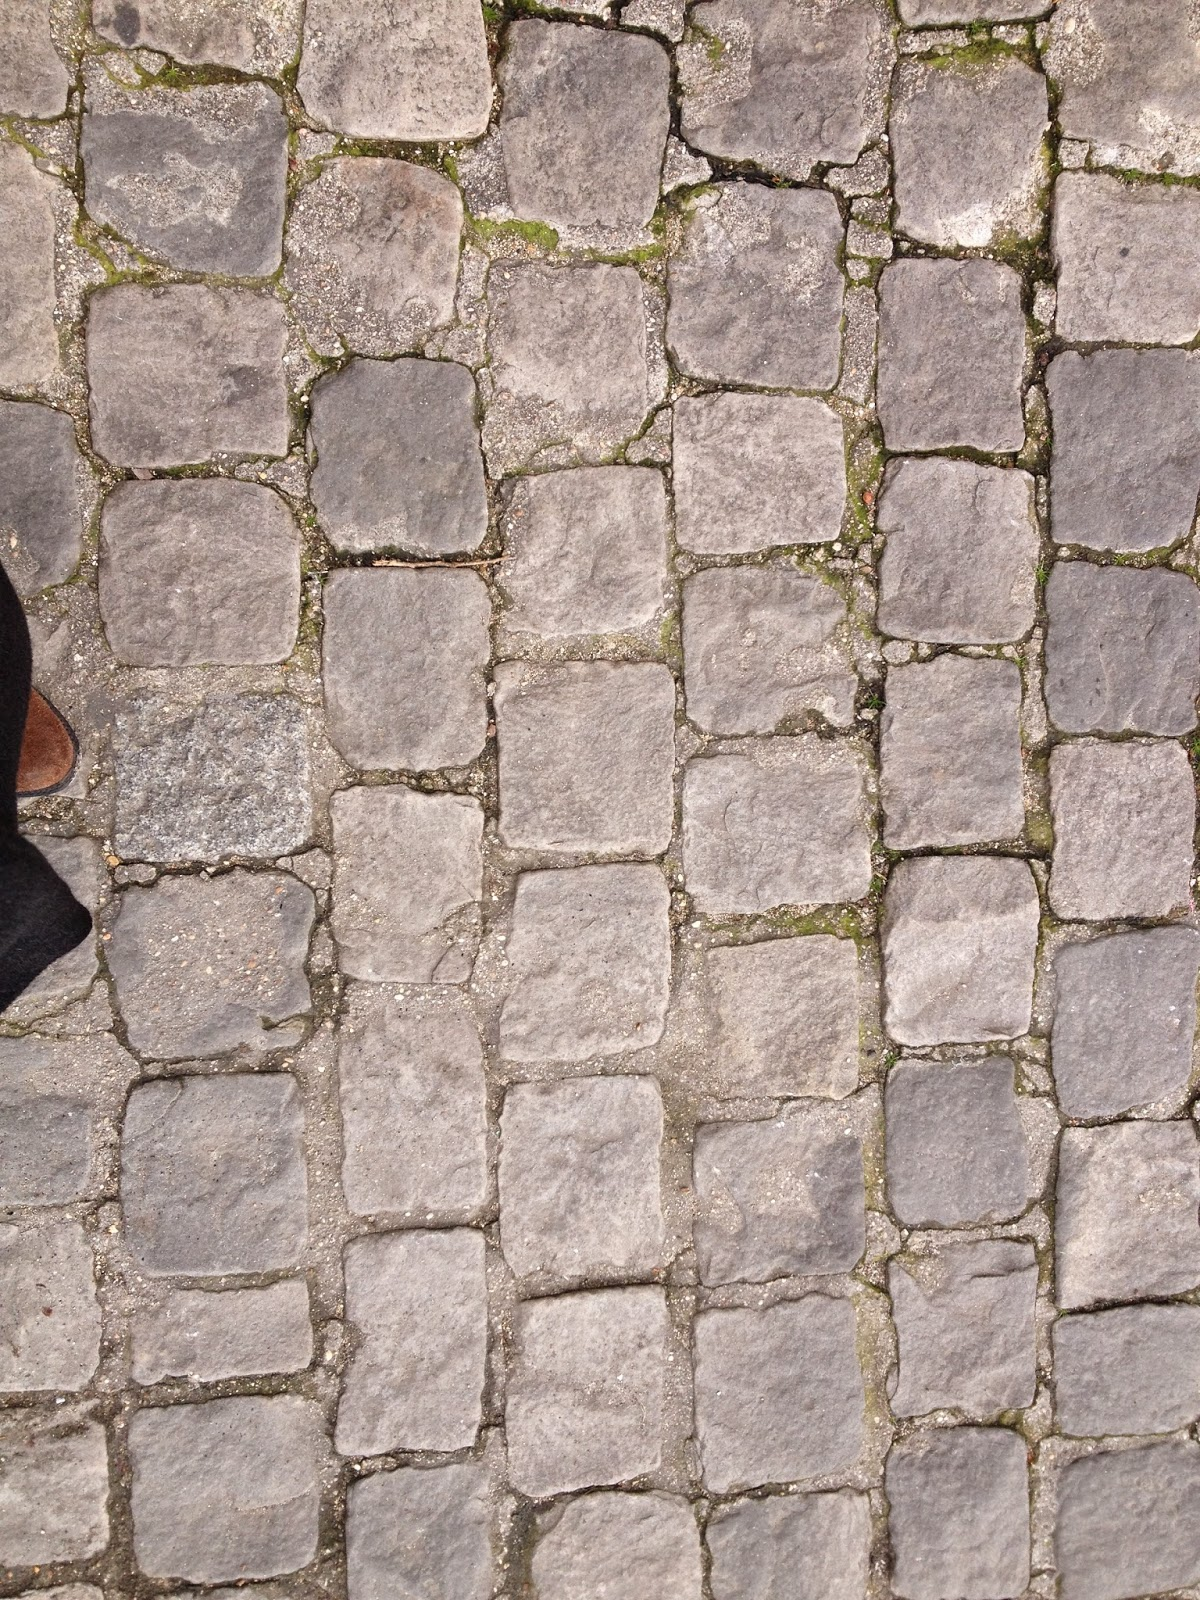 Stone Pavement In Paris : The history girls ways of seeing paris commune by